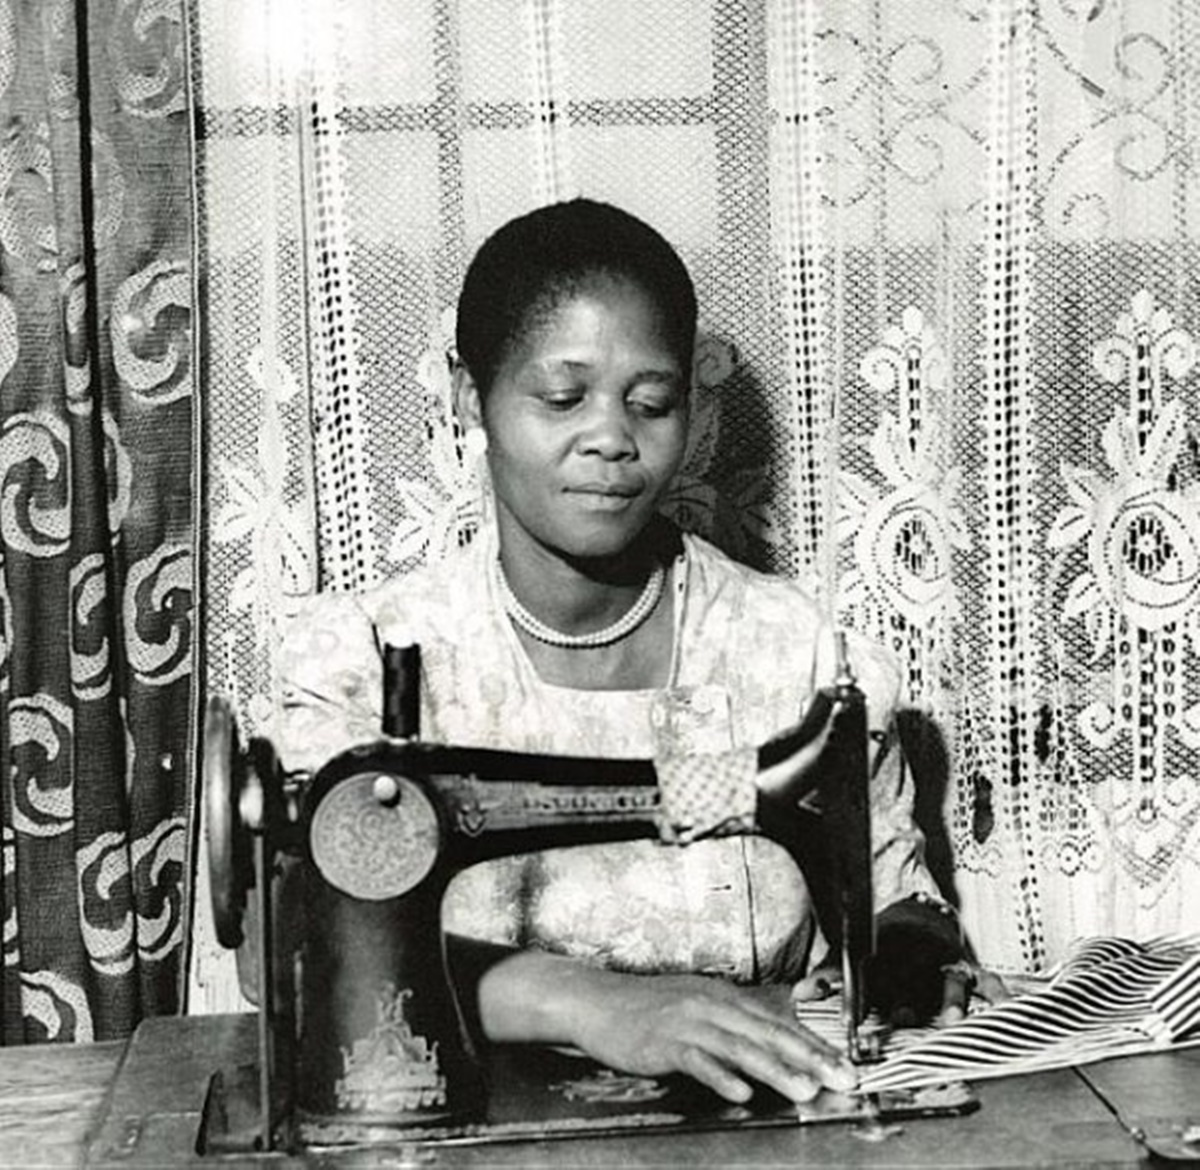 LILLIAN NGOYI Photo Credit: Unknown. Her story was definitely more heart wrenching for me. To read up more go  here